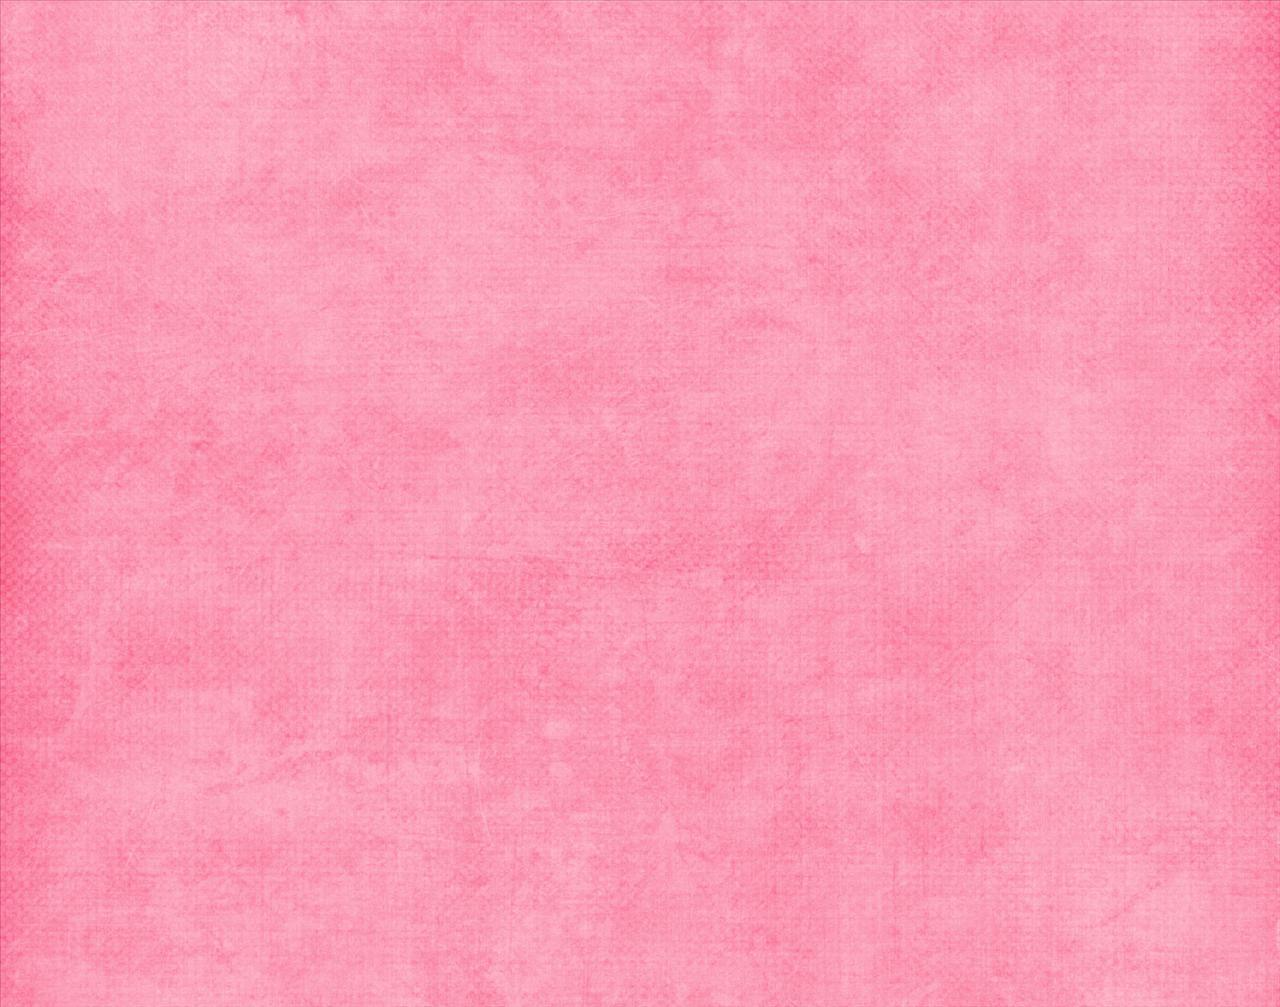 tumblr cute pink backgrounds - photo #2